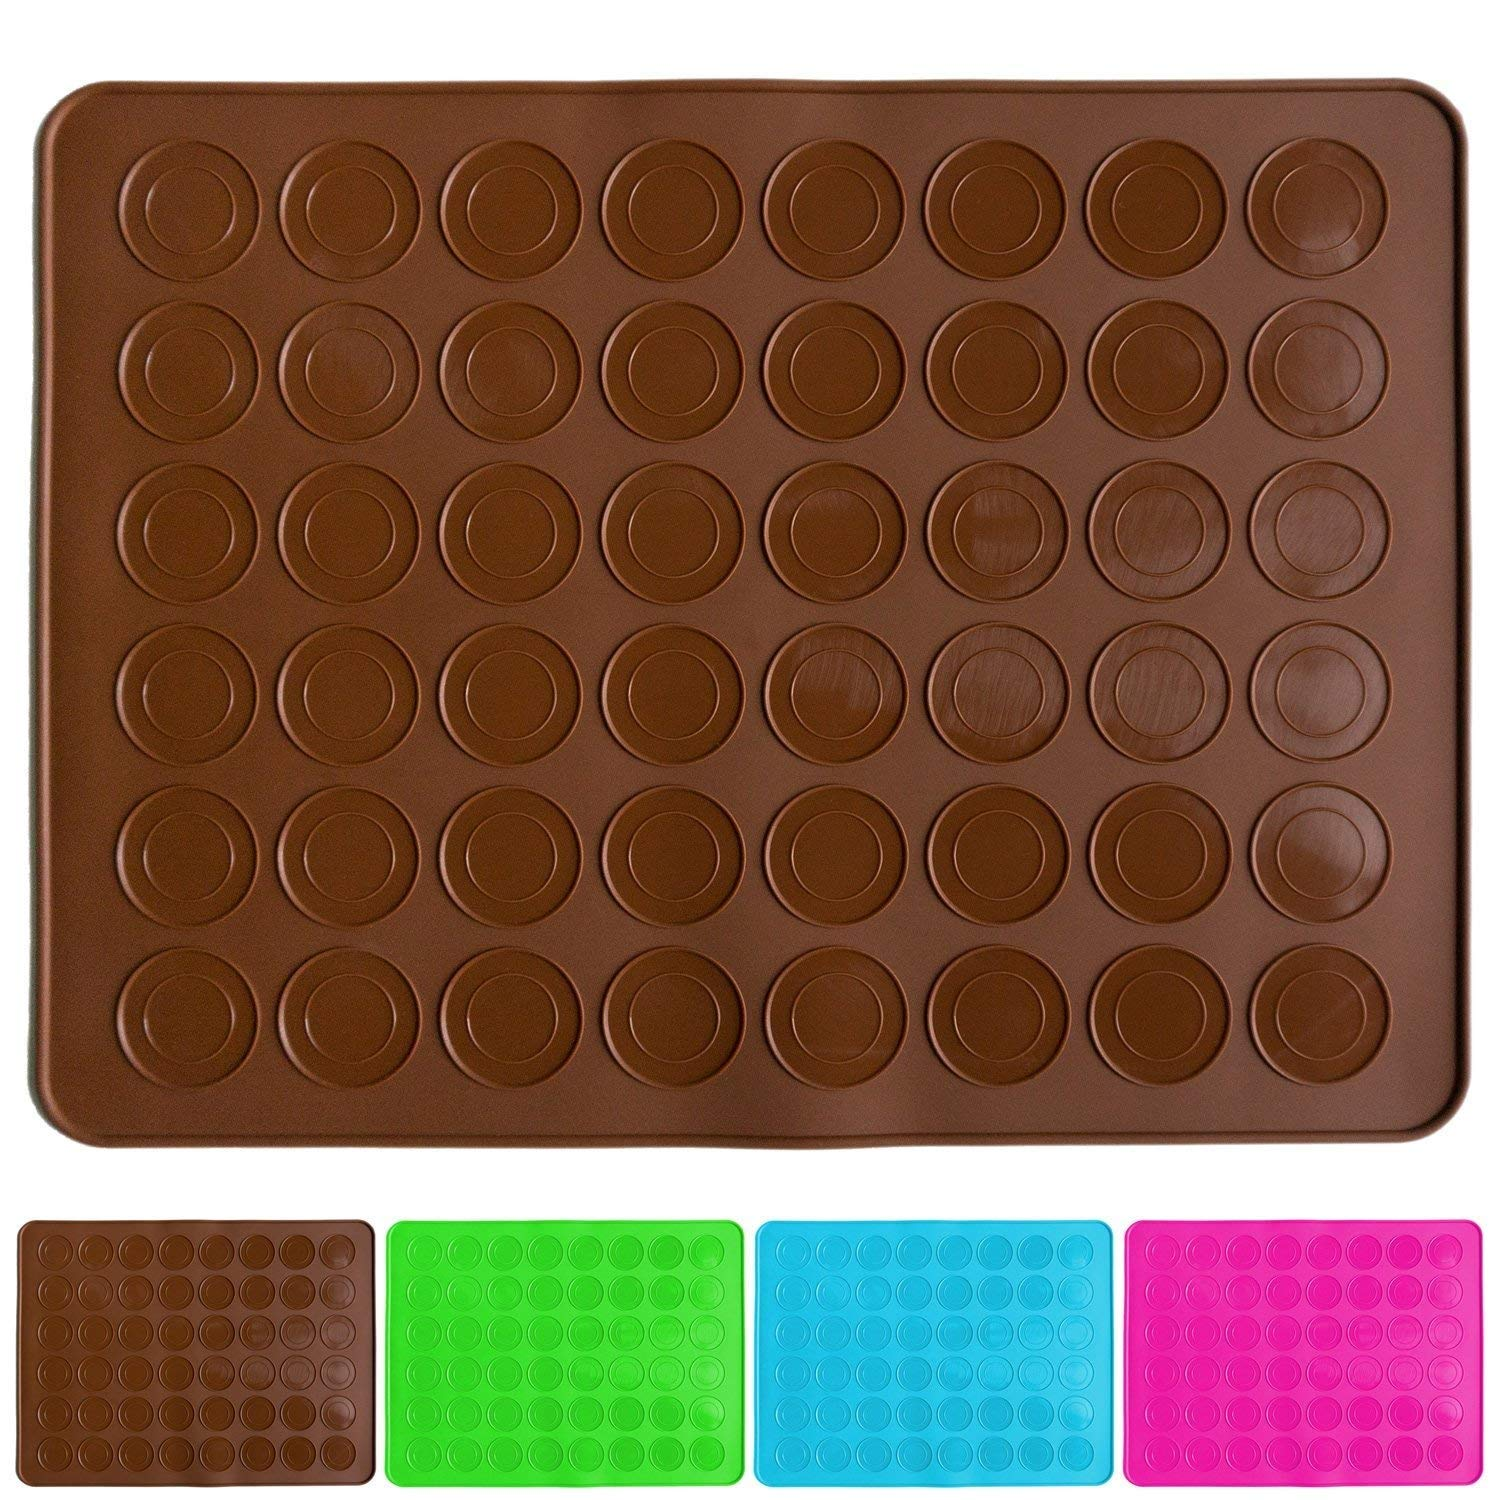 Belmalia macaron silicone baking mat for 24 perfect macarons, 48 moulds, non-stick coated, 38x28cm Brown BM-1002br